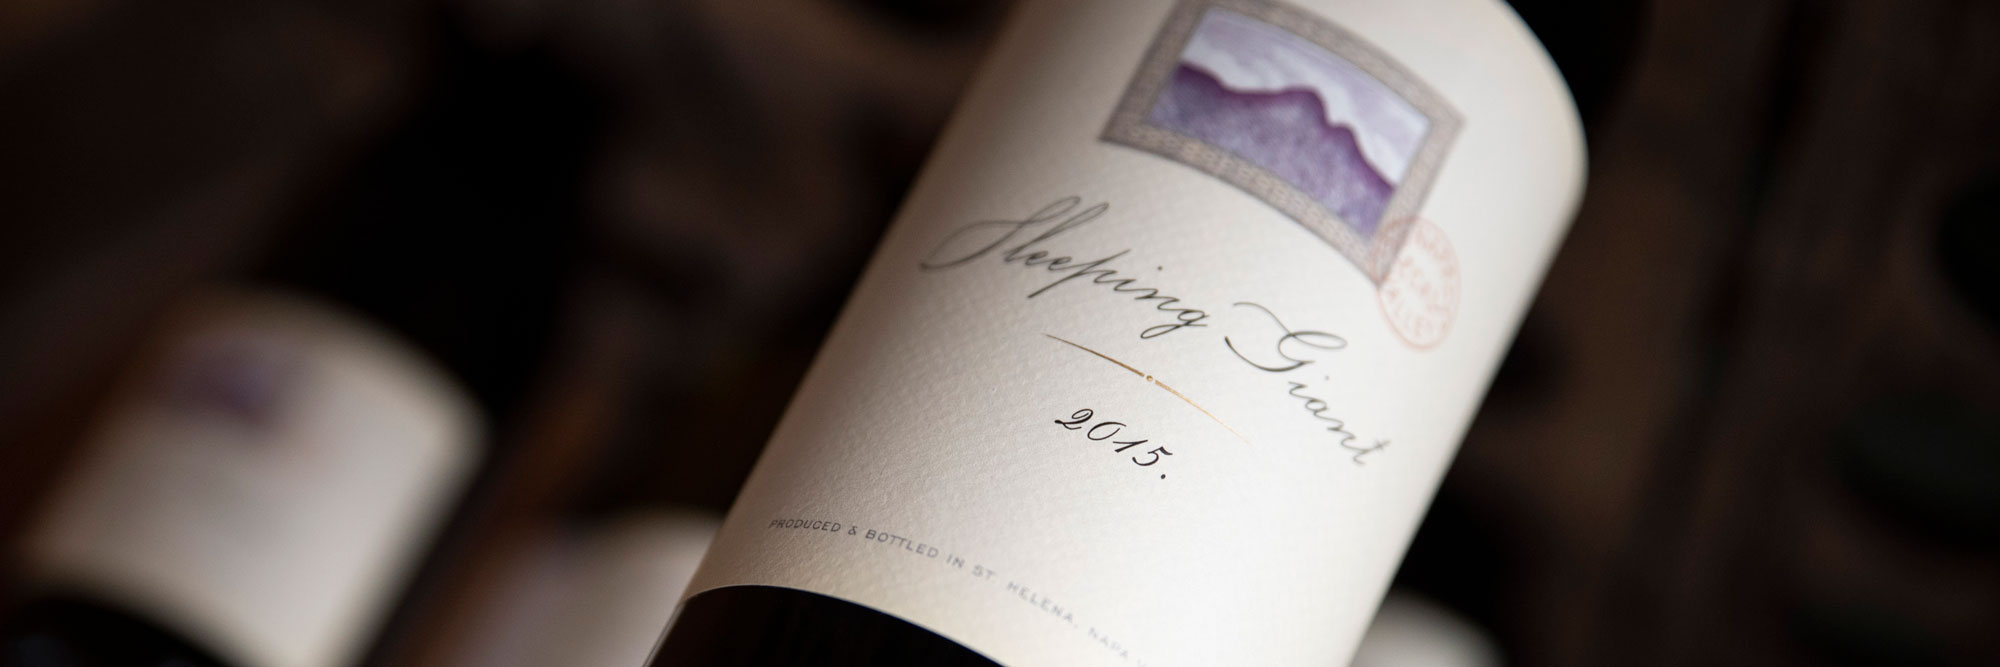 dearden-wines-knapp-2015-sleeping-giant-cab-sauv